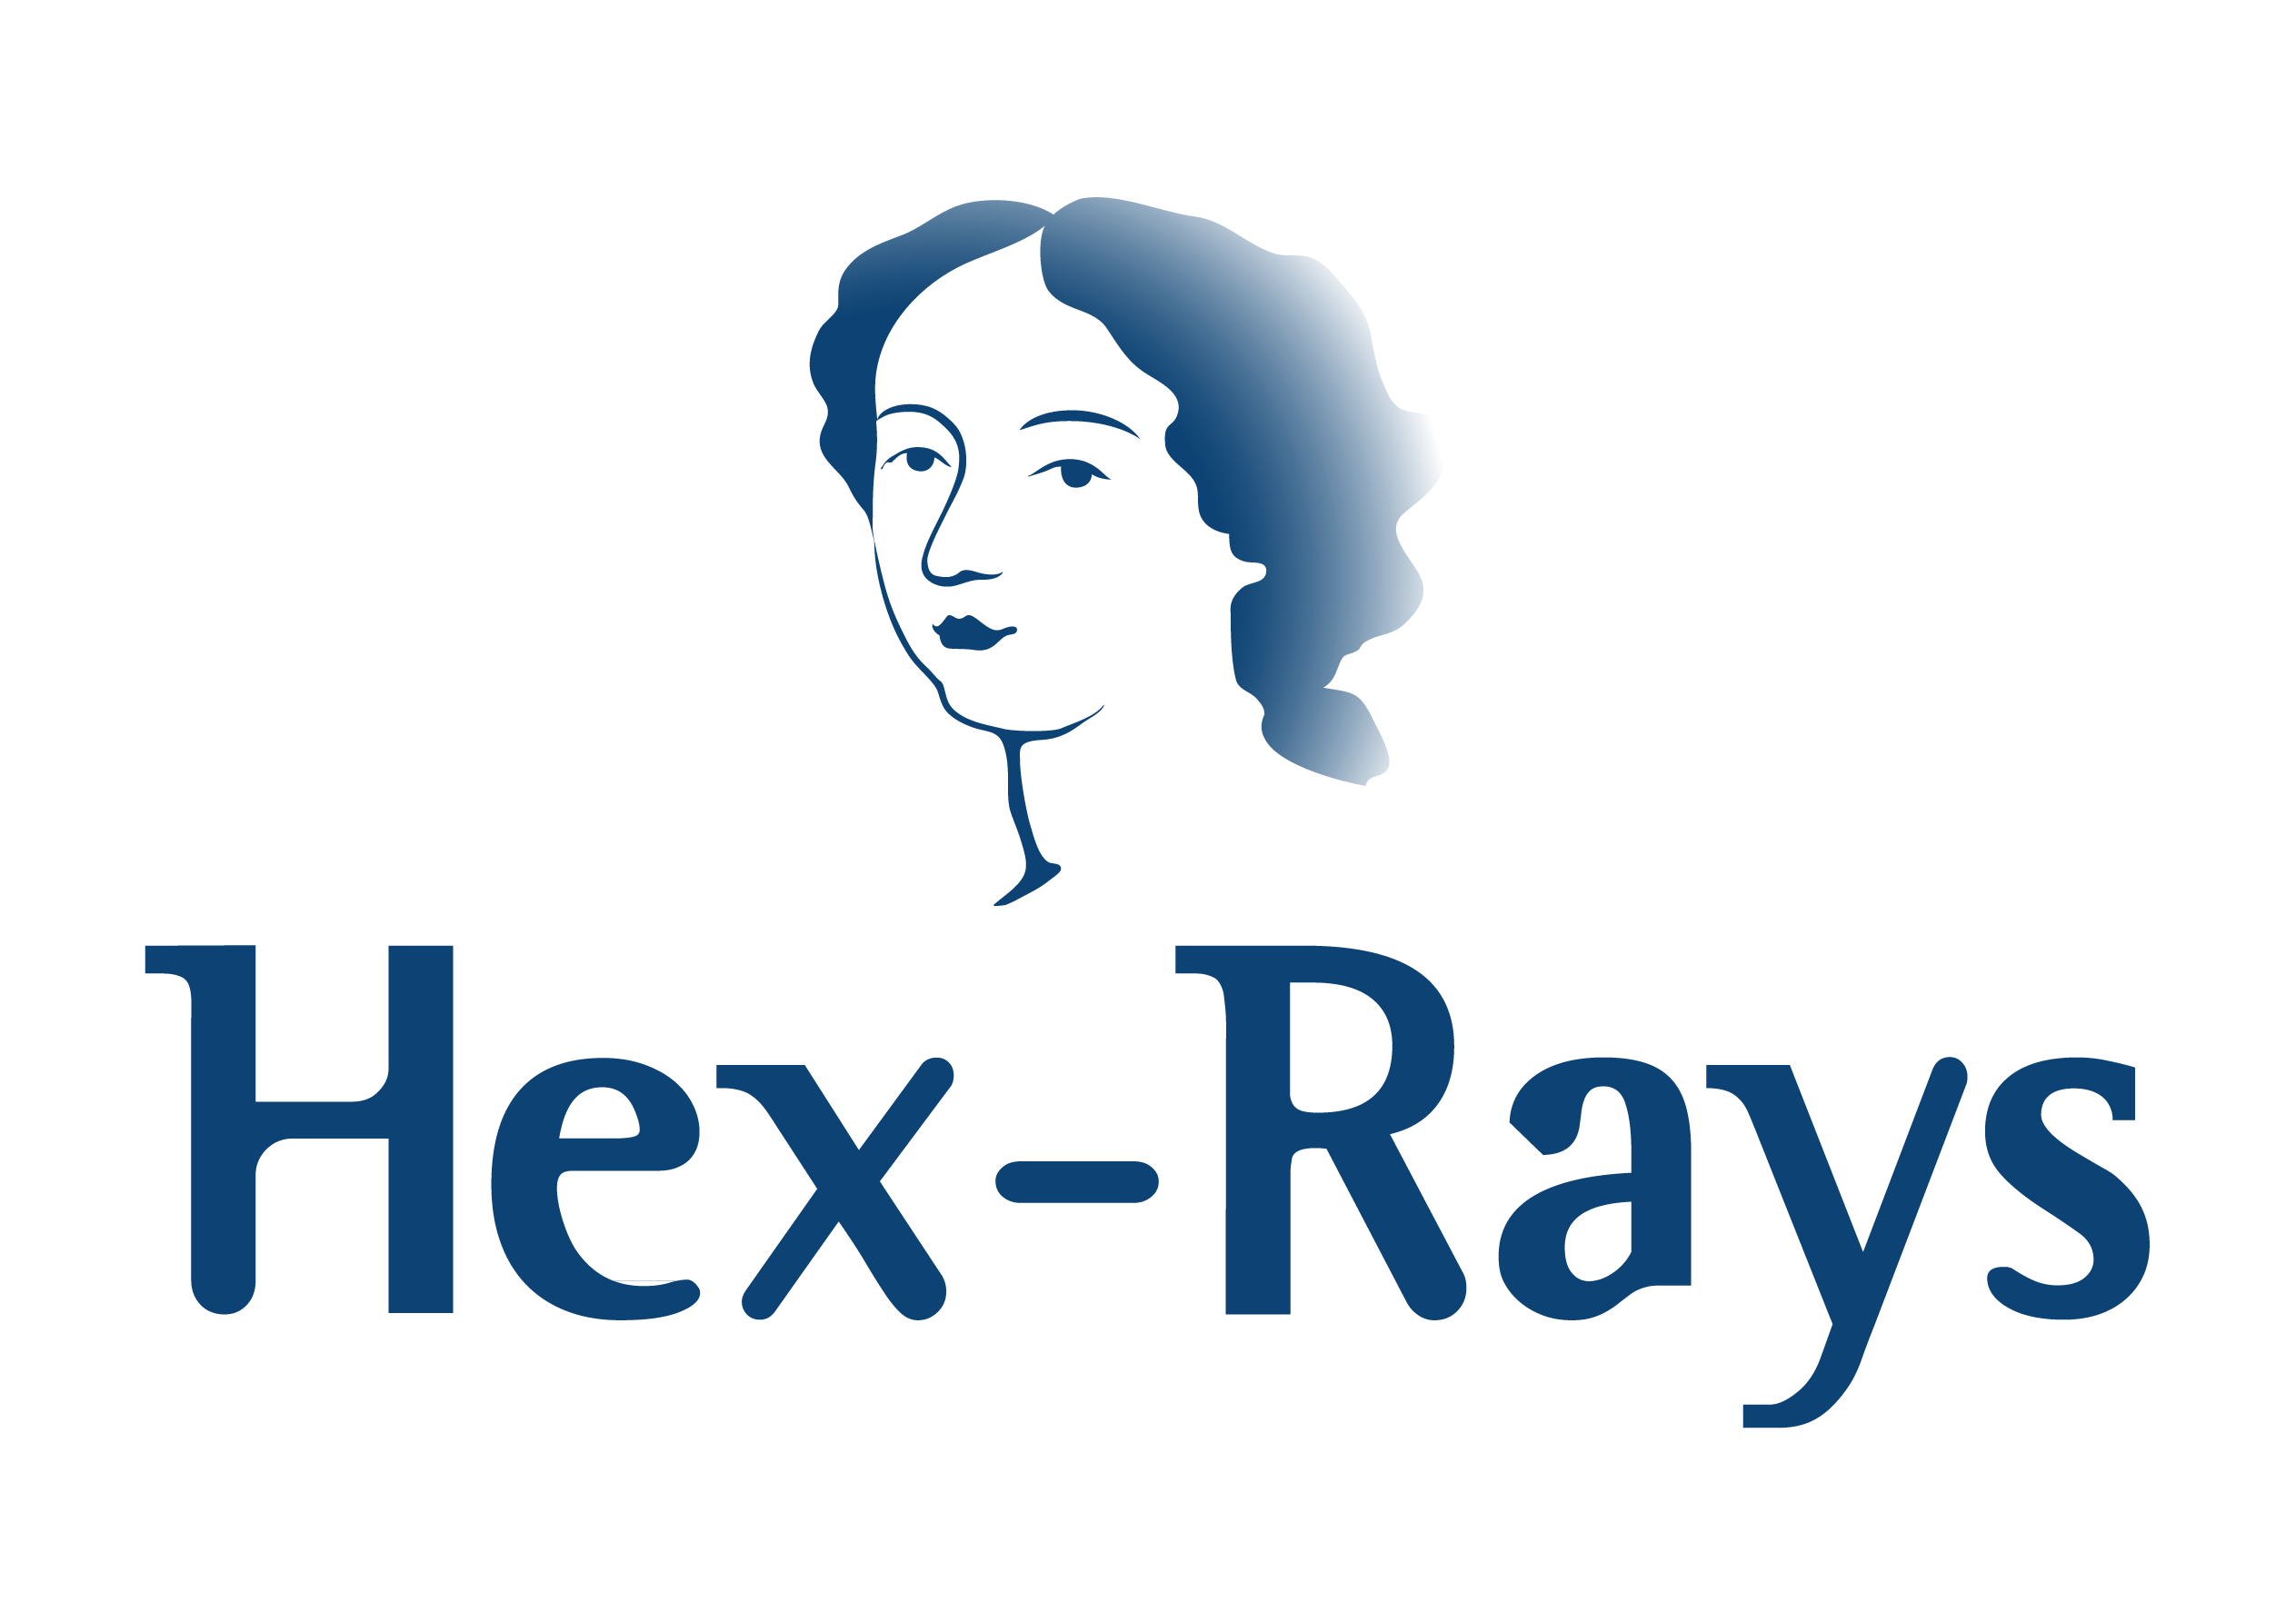 Hex Rays x64 Decompiler Fixed License [Windows]